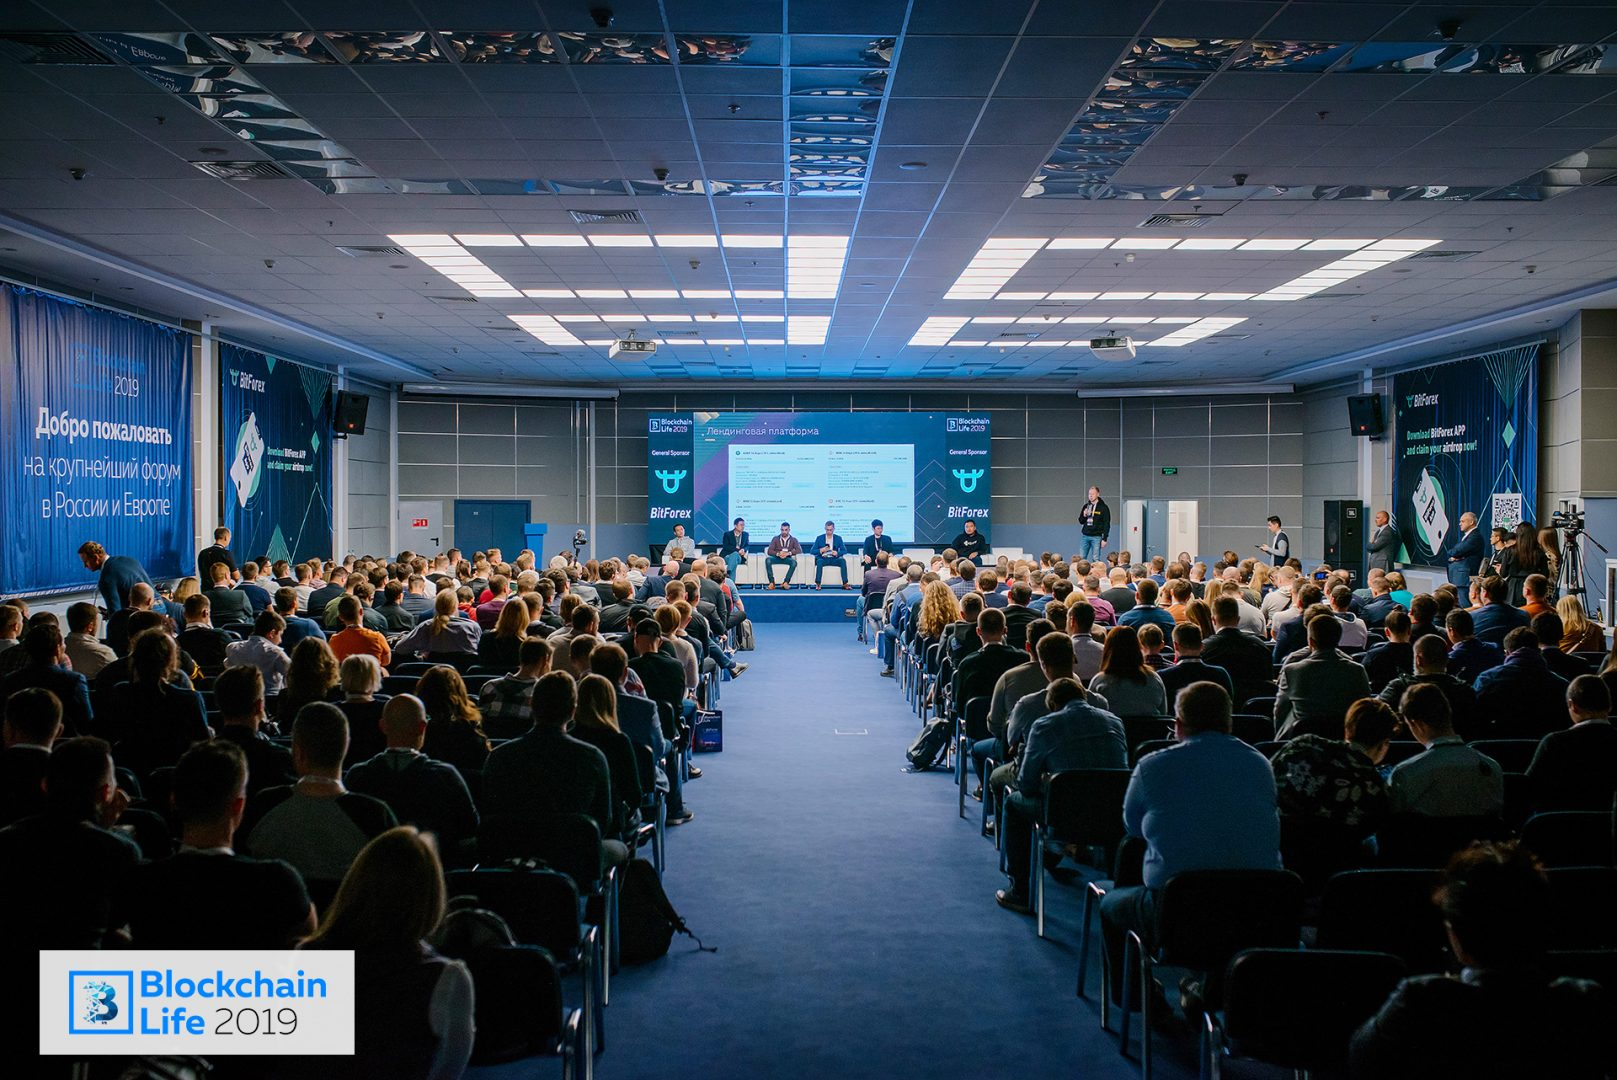 The main industry event — Blockchain Life 2019 — was successfully held in Moscow